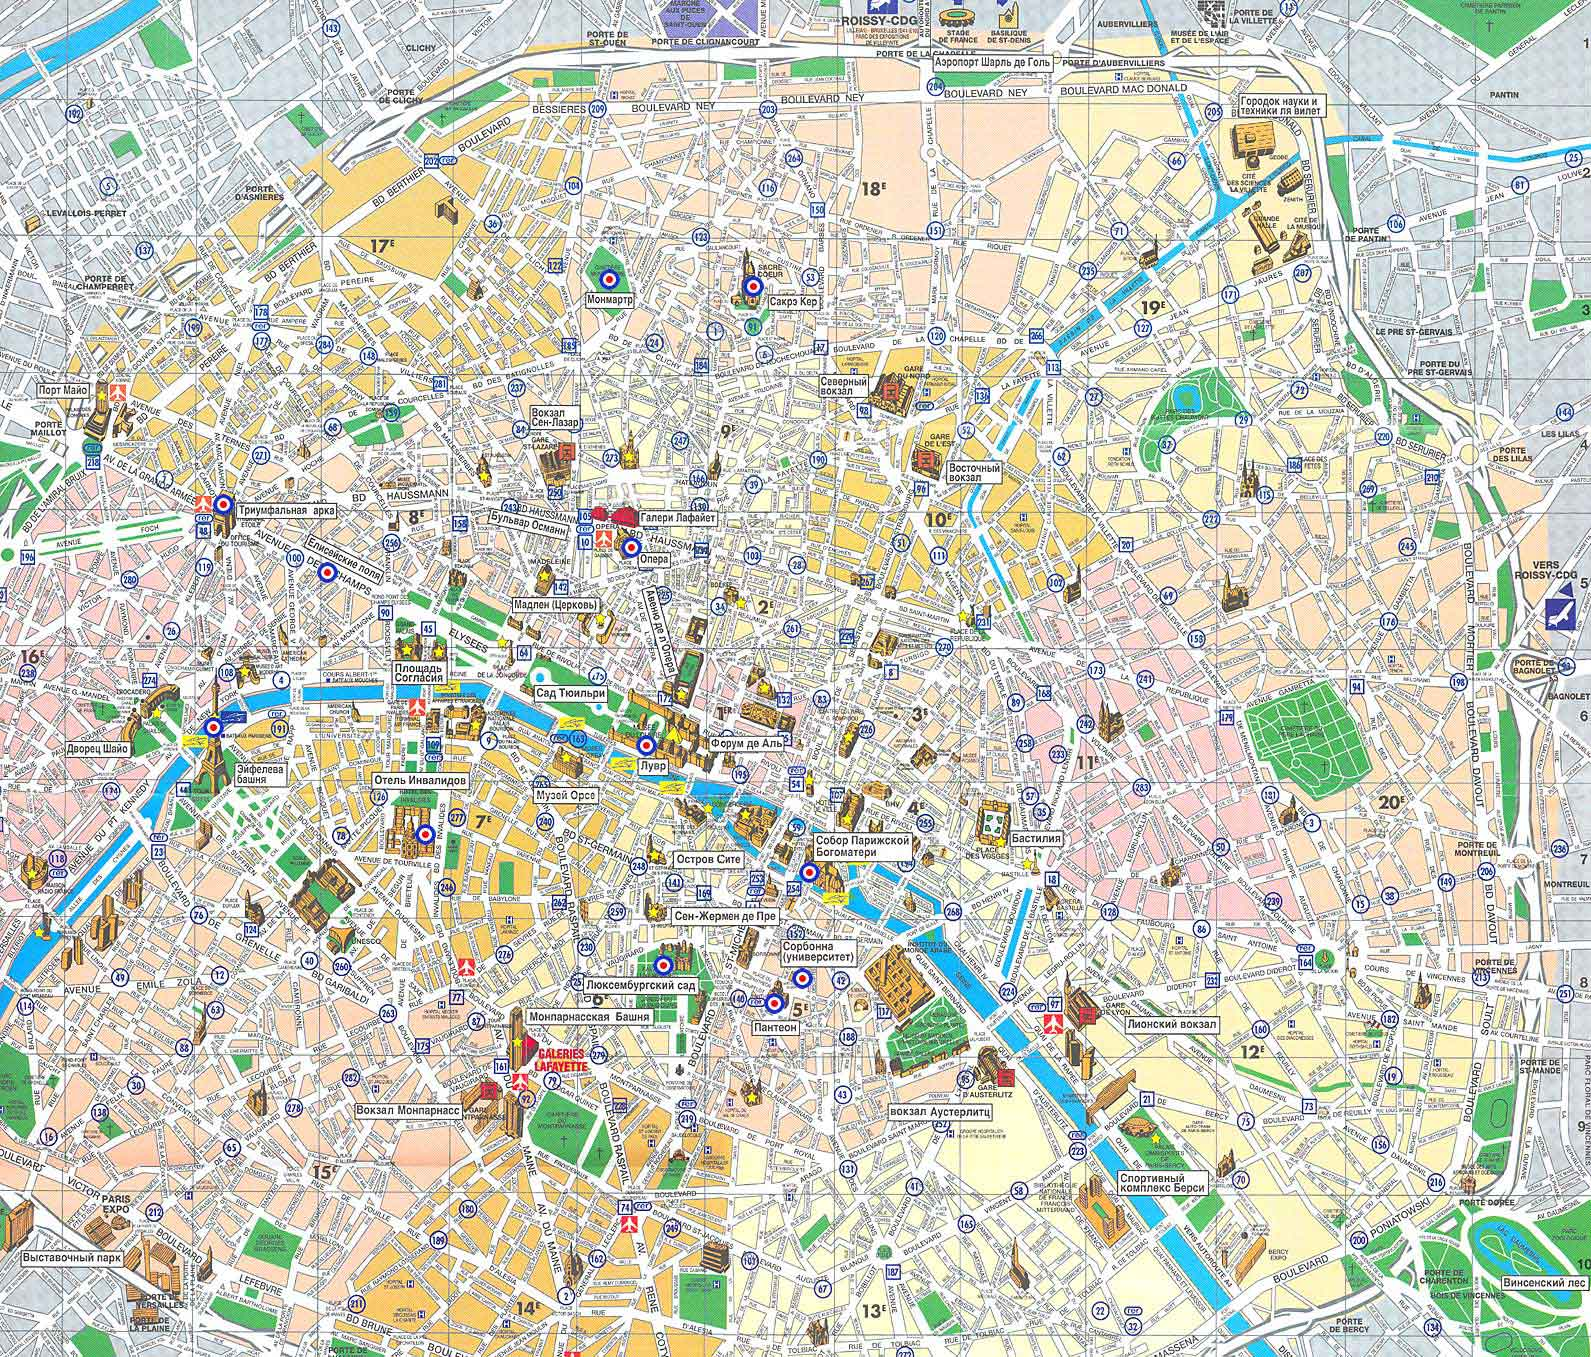 Paris Map - Detailed City and Metro Maps of Paris for Download ...